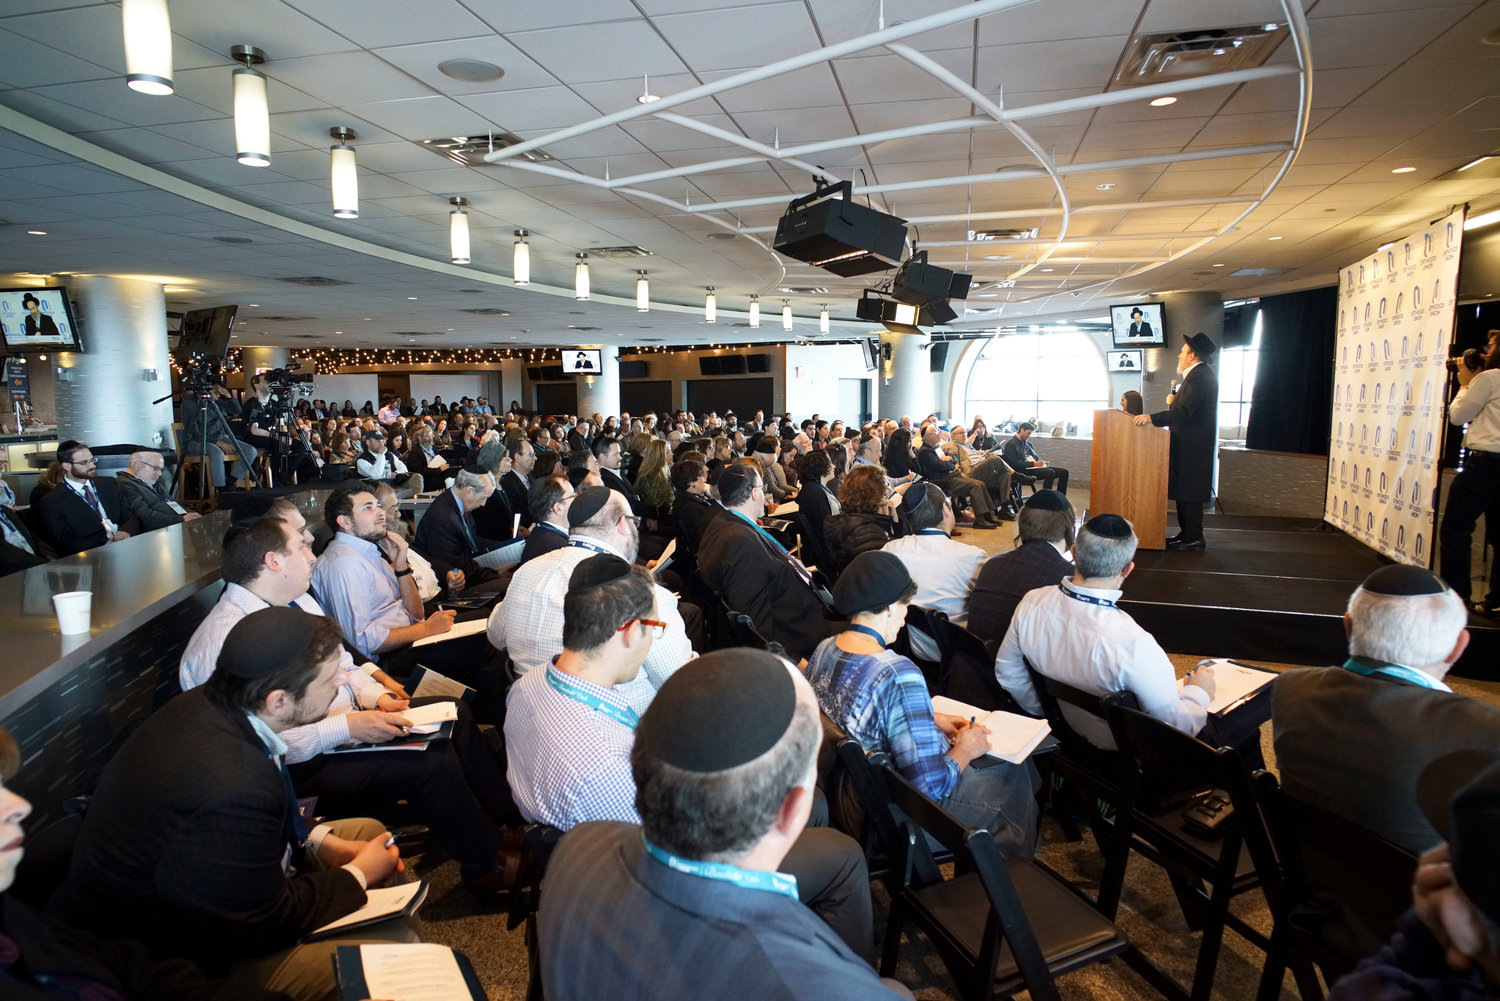 Rabbi Moishe Weinberger presented a lecture at the Orthodox Union's Torah New York at Citi Field last year.